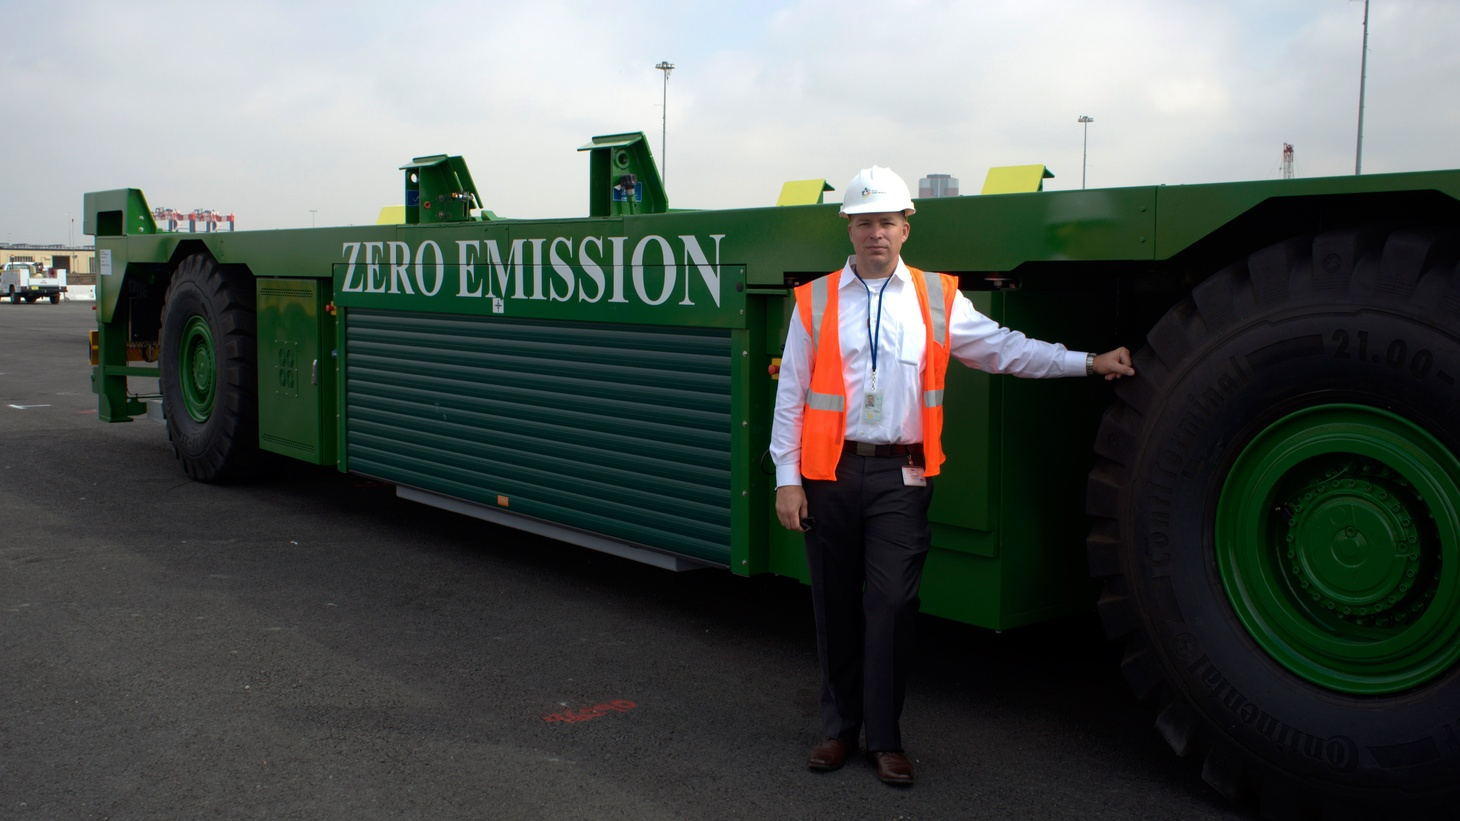 The 2008 economic crash fundamentally changed the ports of Los Angeles and Long Beach, bringing in bigger ships and new technology to handle all challenges of staying competitive.       Harbor Commission Vice President Rich Dines poses in front of one of the Port of Long Beach's new AGV's, or Automated Guided Vehicles. Photo credit: Lu Okowski